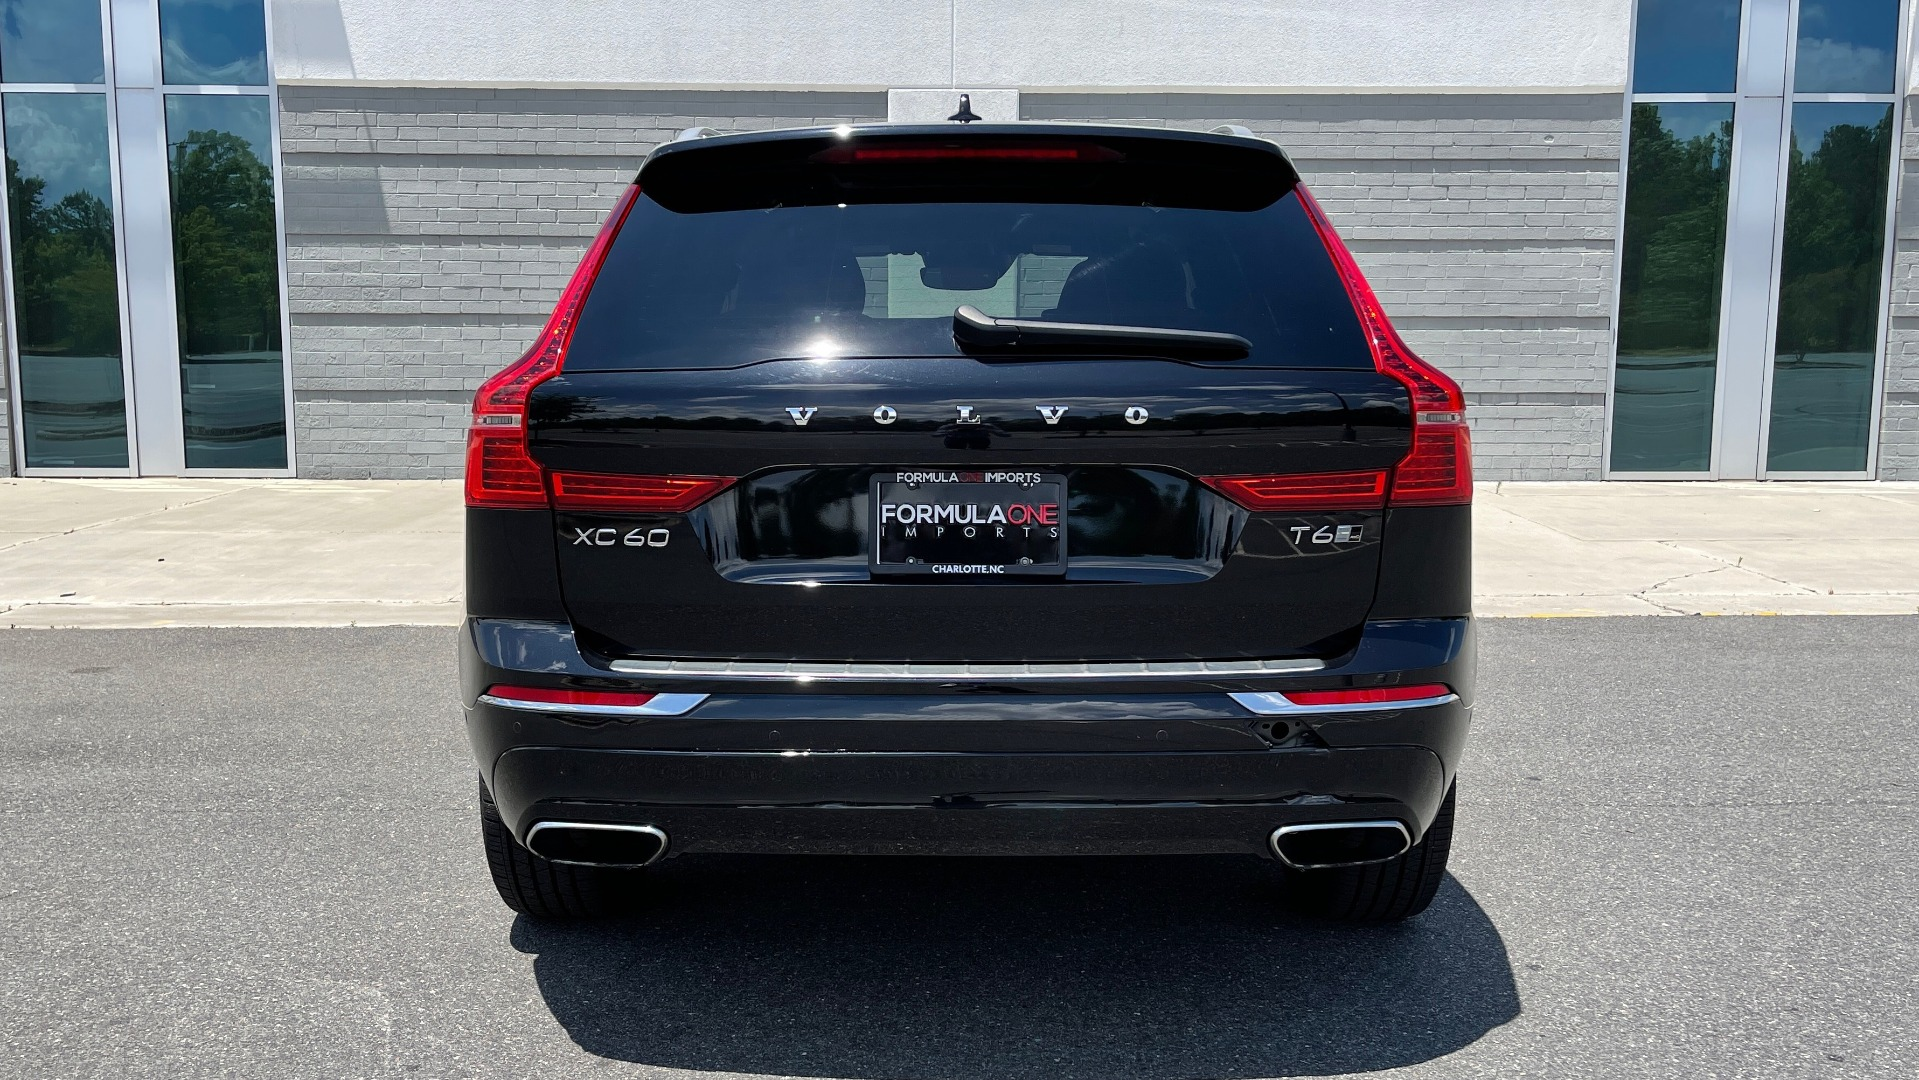 Used 2018 Volvo XC60 INSCRIPTION 2.0L TURBO SUV / AWD / NAV / SUNROOF / REARVIEW for sale $38,795 at Formula Imports in Charlotte NC 28227 22